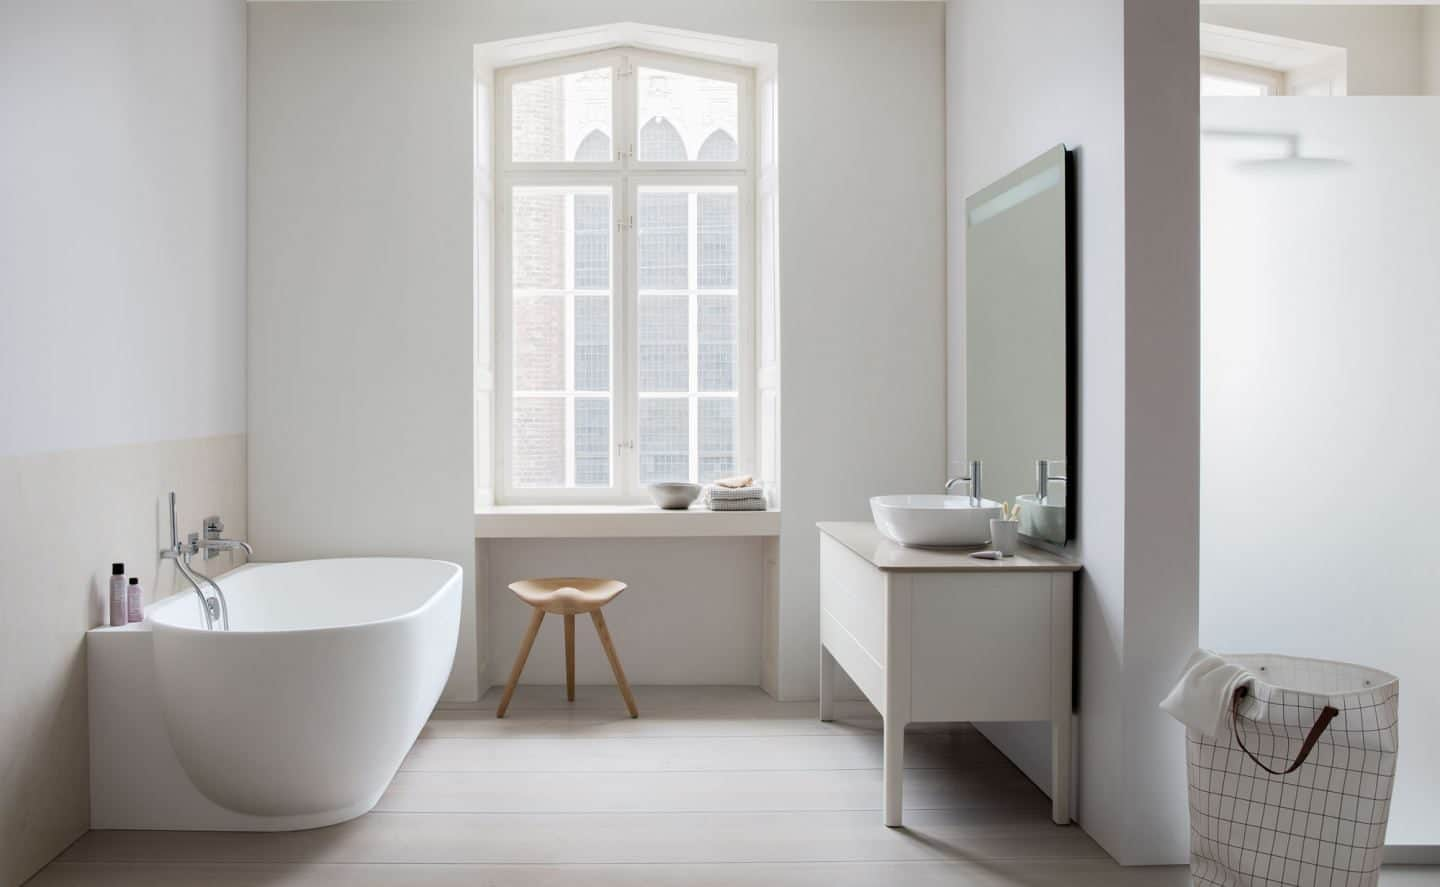 The Luv sanitary ware collection by luxury bathroom brand Duravit. A bathtub stand opposite a sink with a window behind.